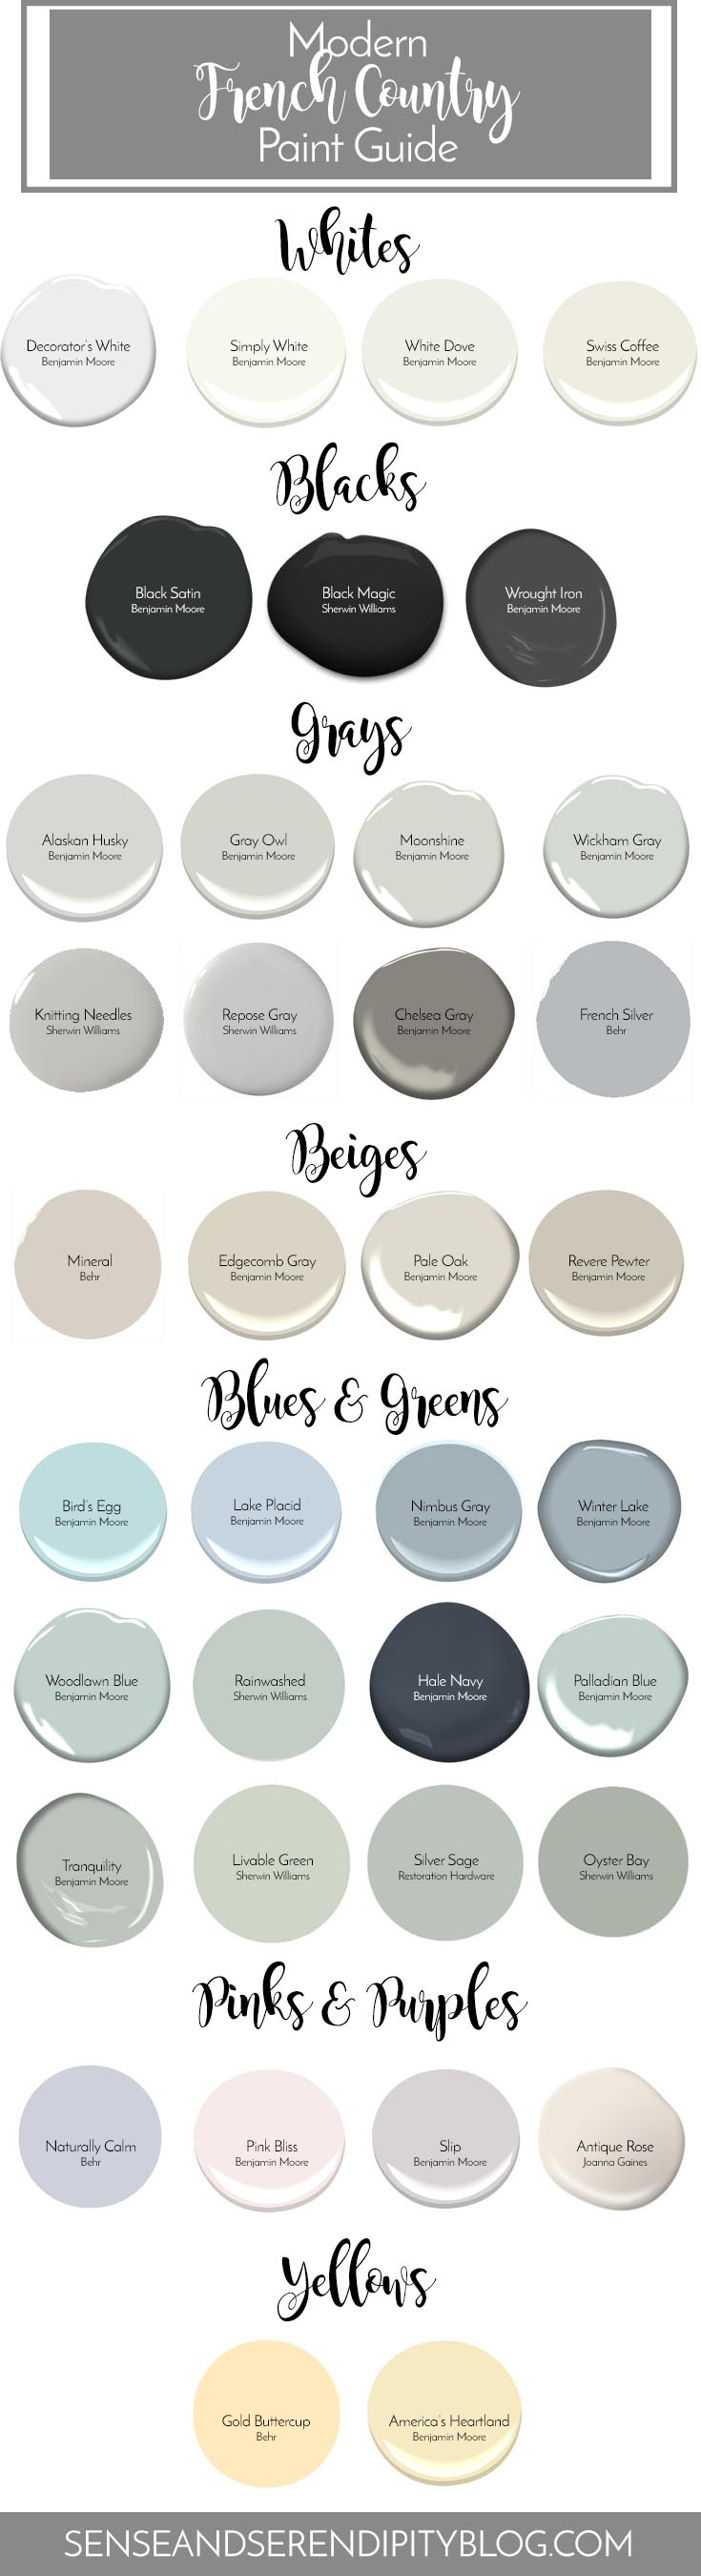 Modern French Country Paint Guide   Sense & Serendipity